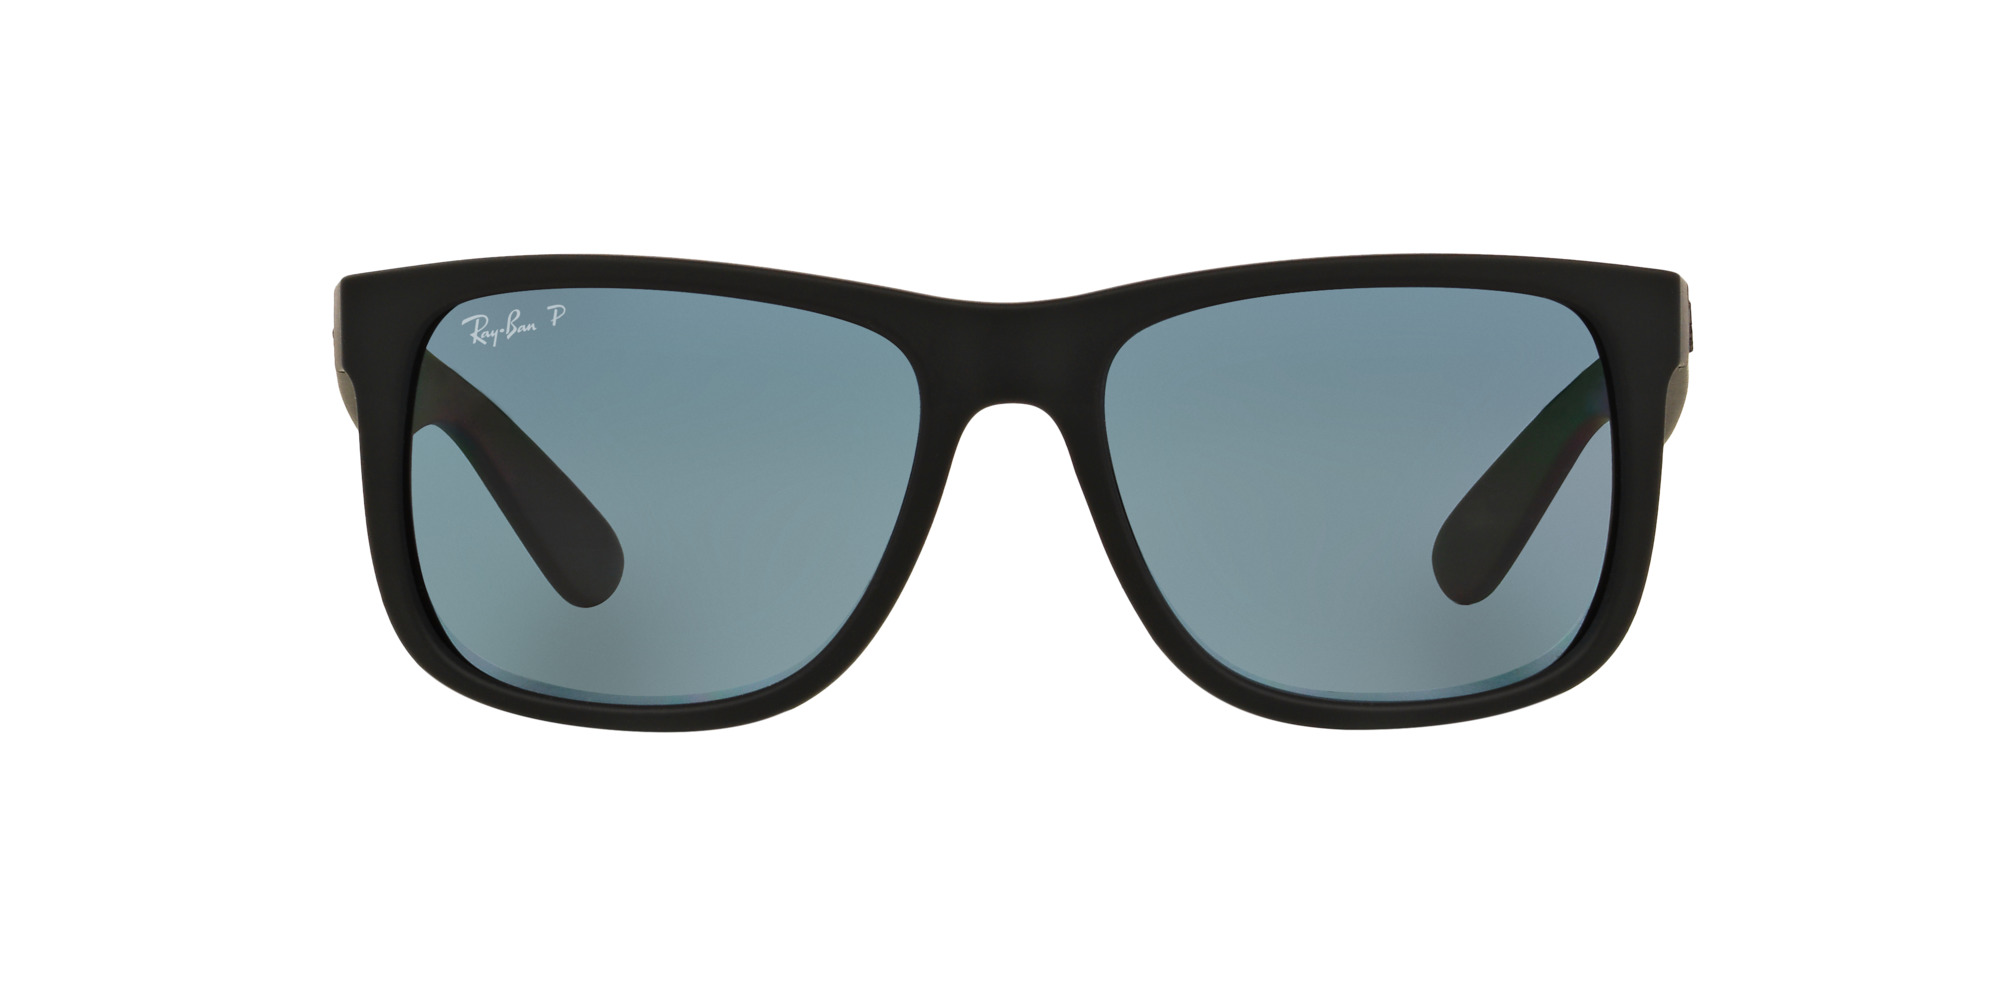 RAY-BAN JUSTIN RB 4165 622/2V POLARIZADAS 55mm.-360